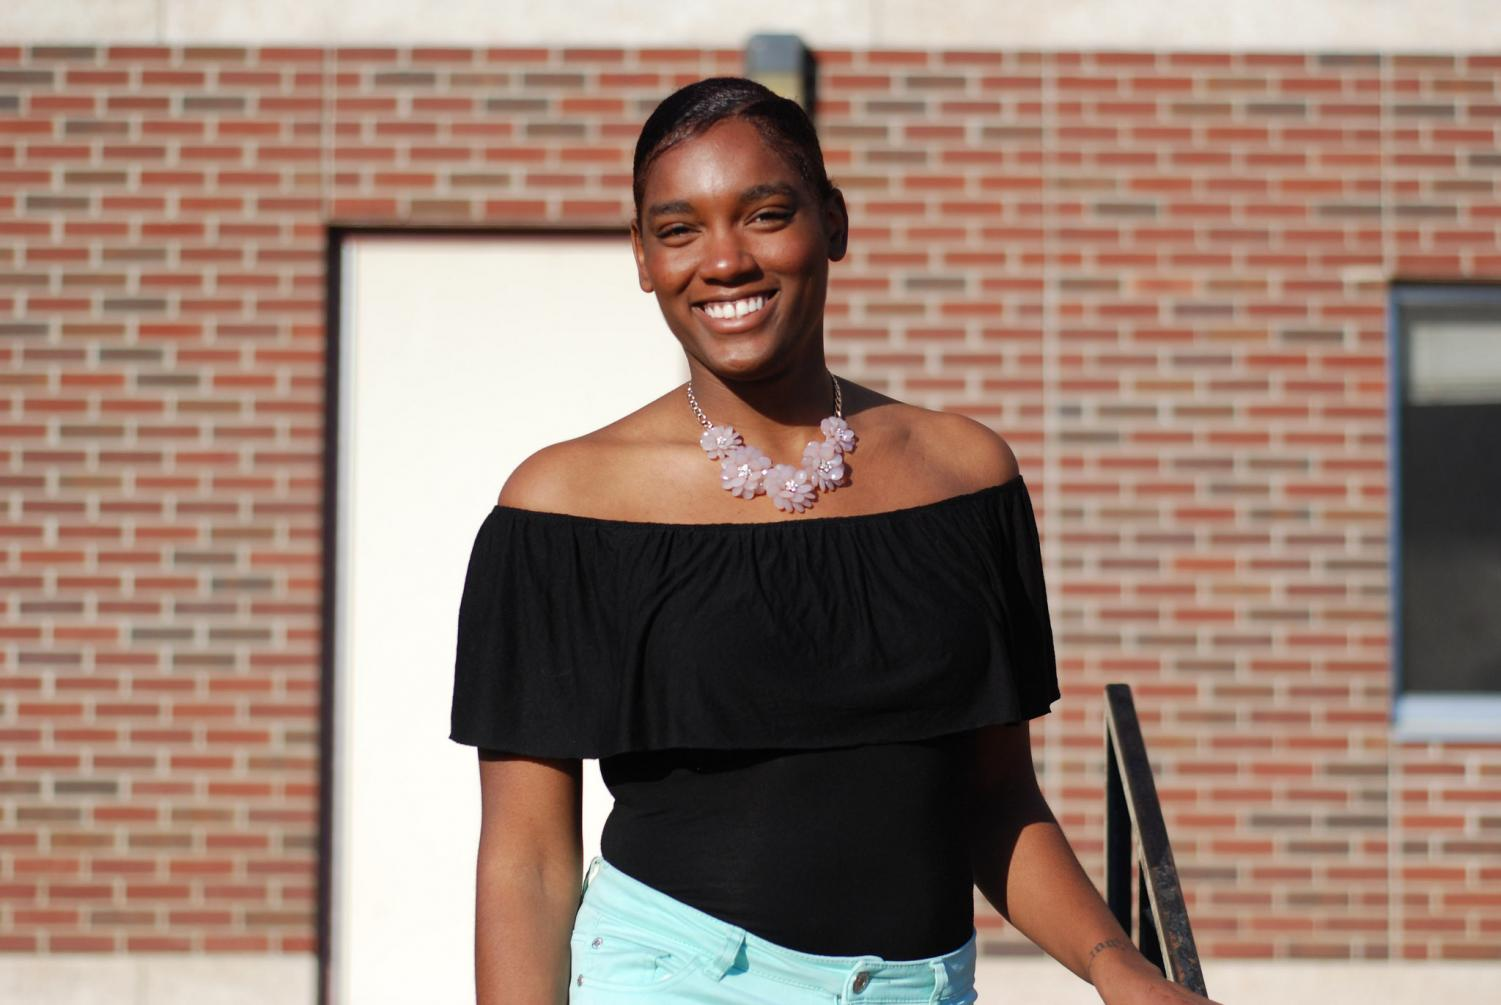 Zaria Smith is a senior who is involved in many aspects of campus life. She is in UPAC, Sigma Sigma Sigma, Panhellenic Council, Student Senate and the RE Initiative. Smith was also elected Homecoming Queen this year after receiving the nomination from Student Senate. Smith encourages everyone to get involved on campus.